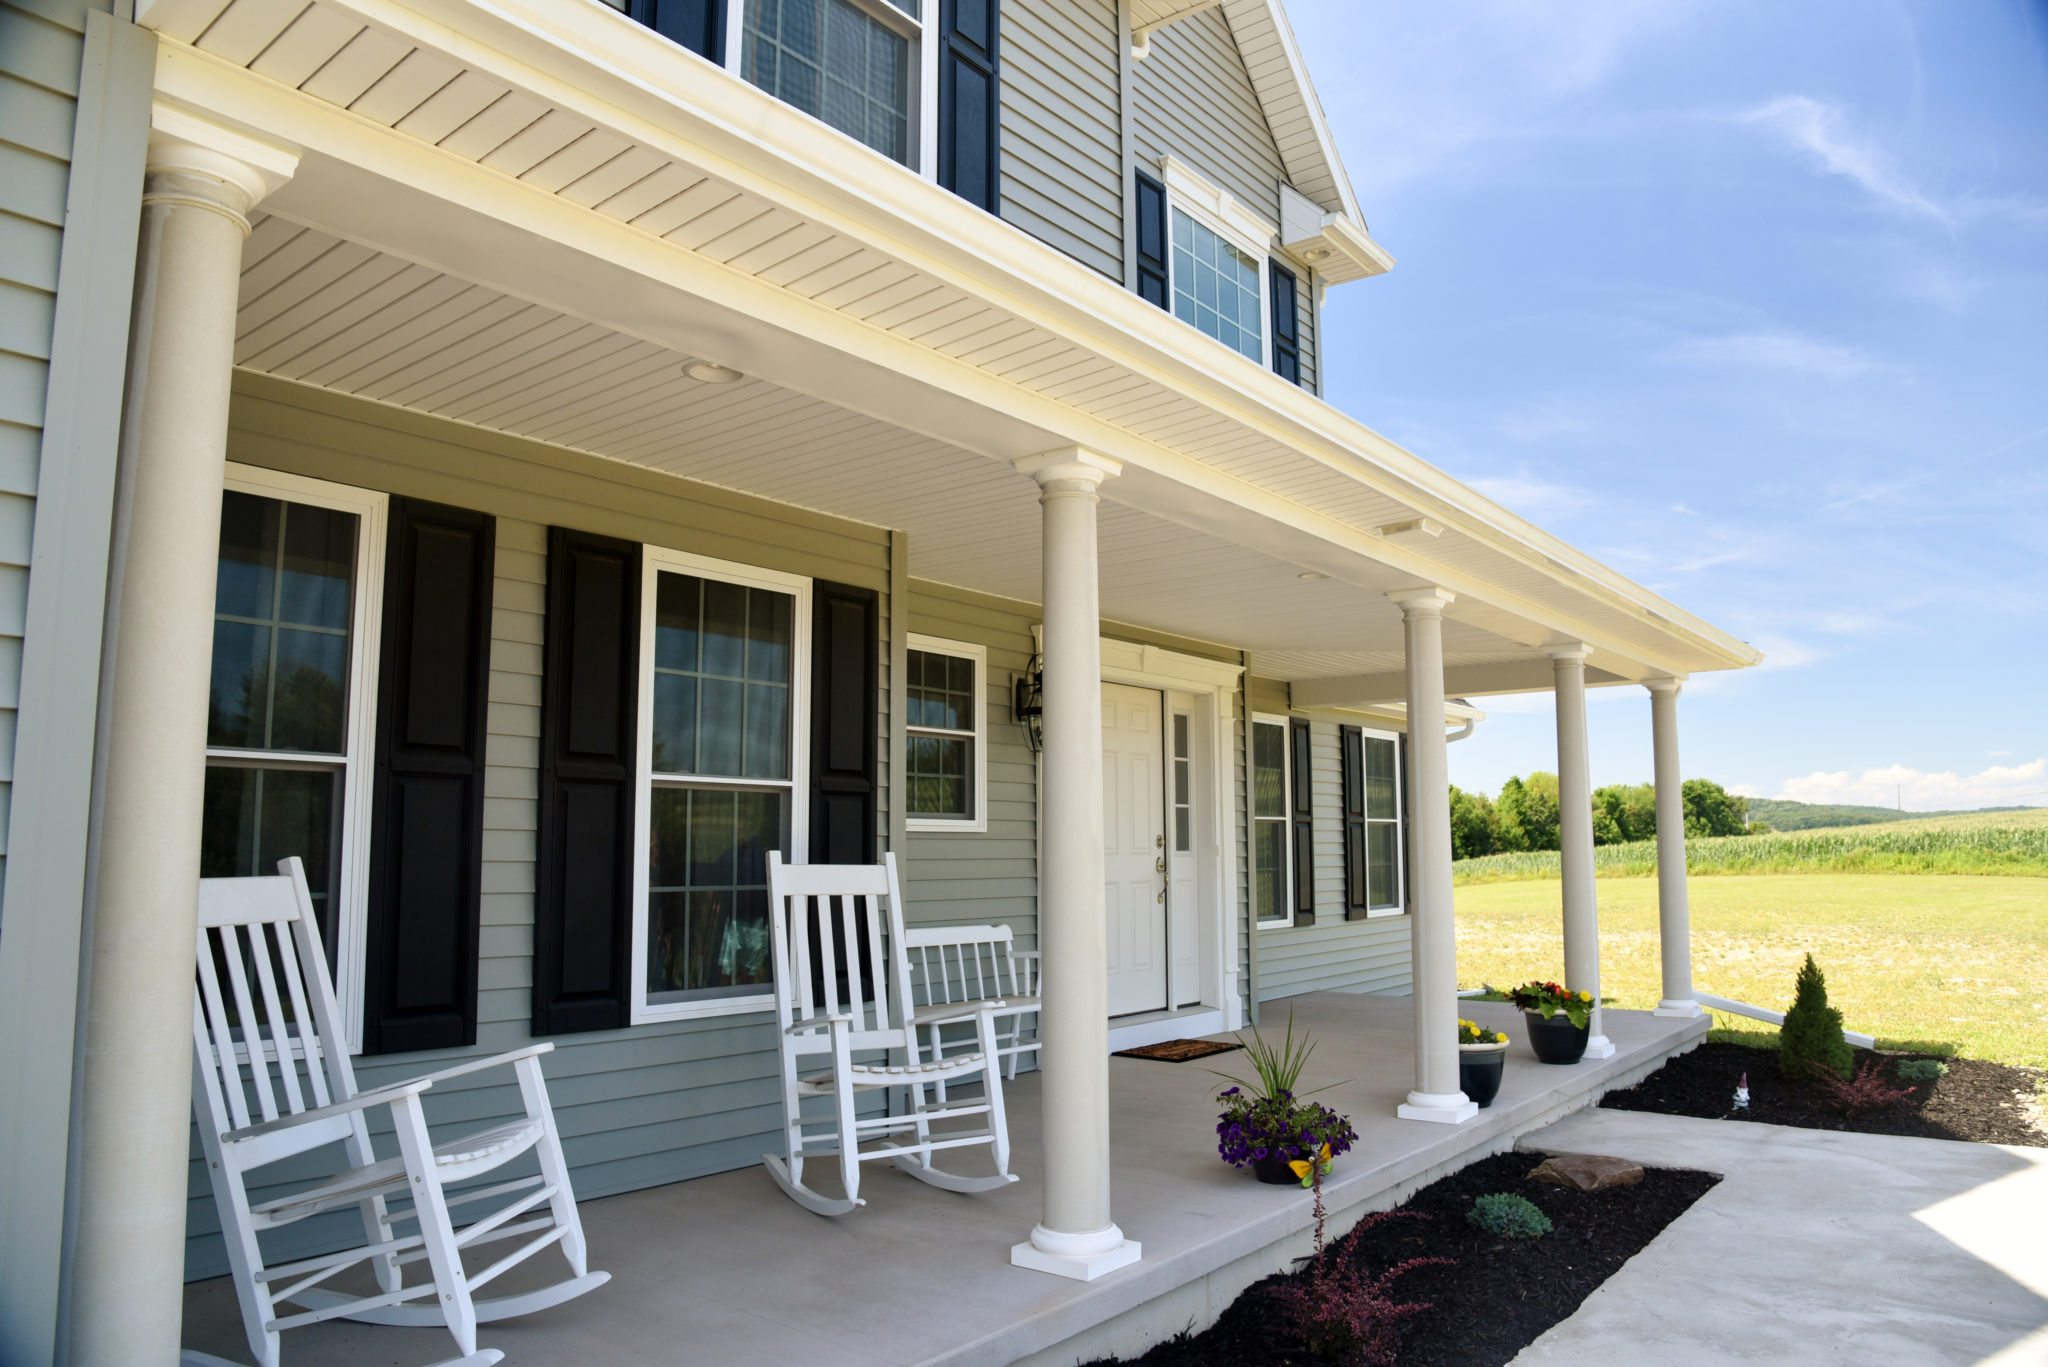 4 appealing and welcoming front porch styles brookside for Side porch designs